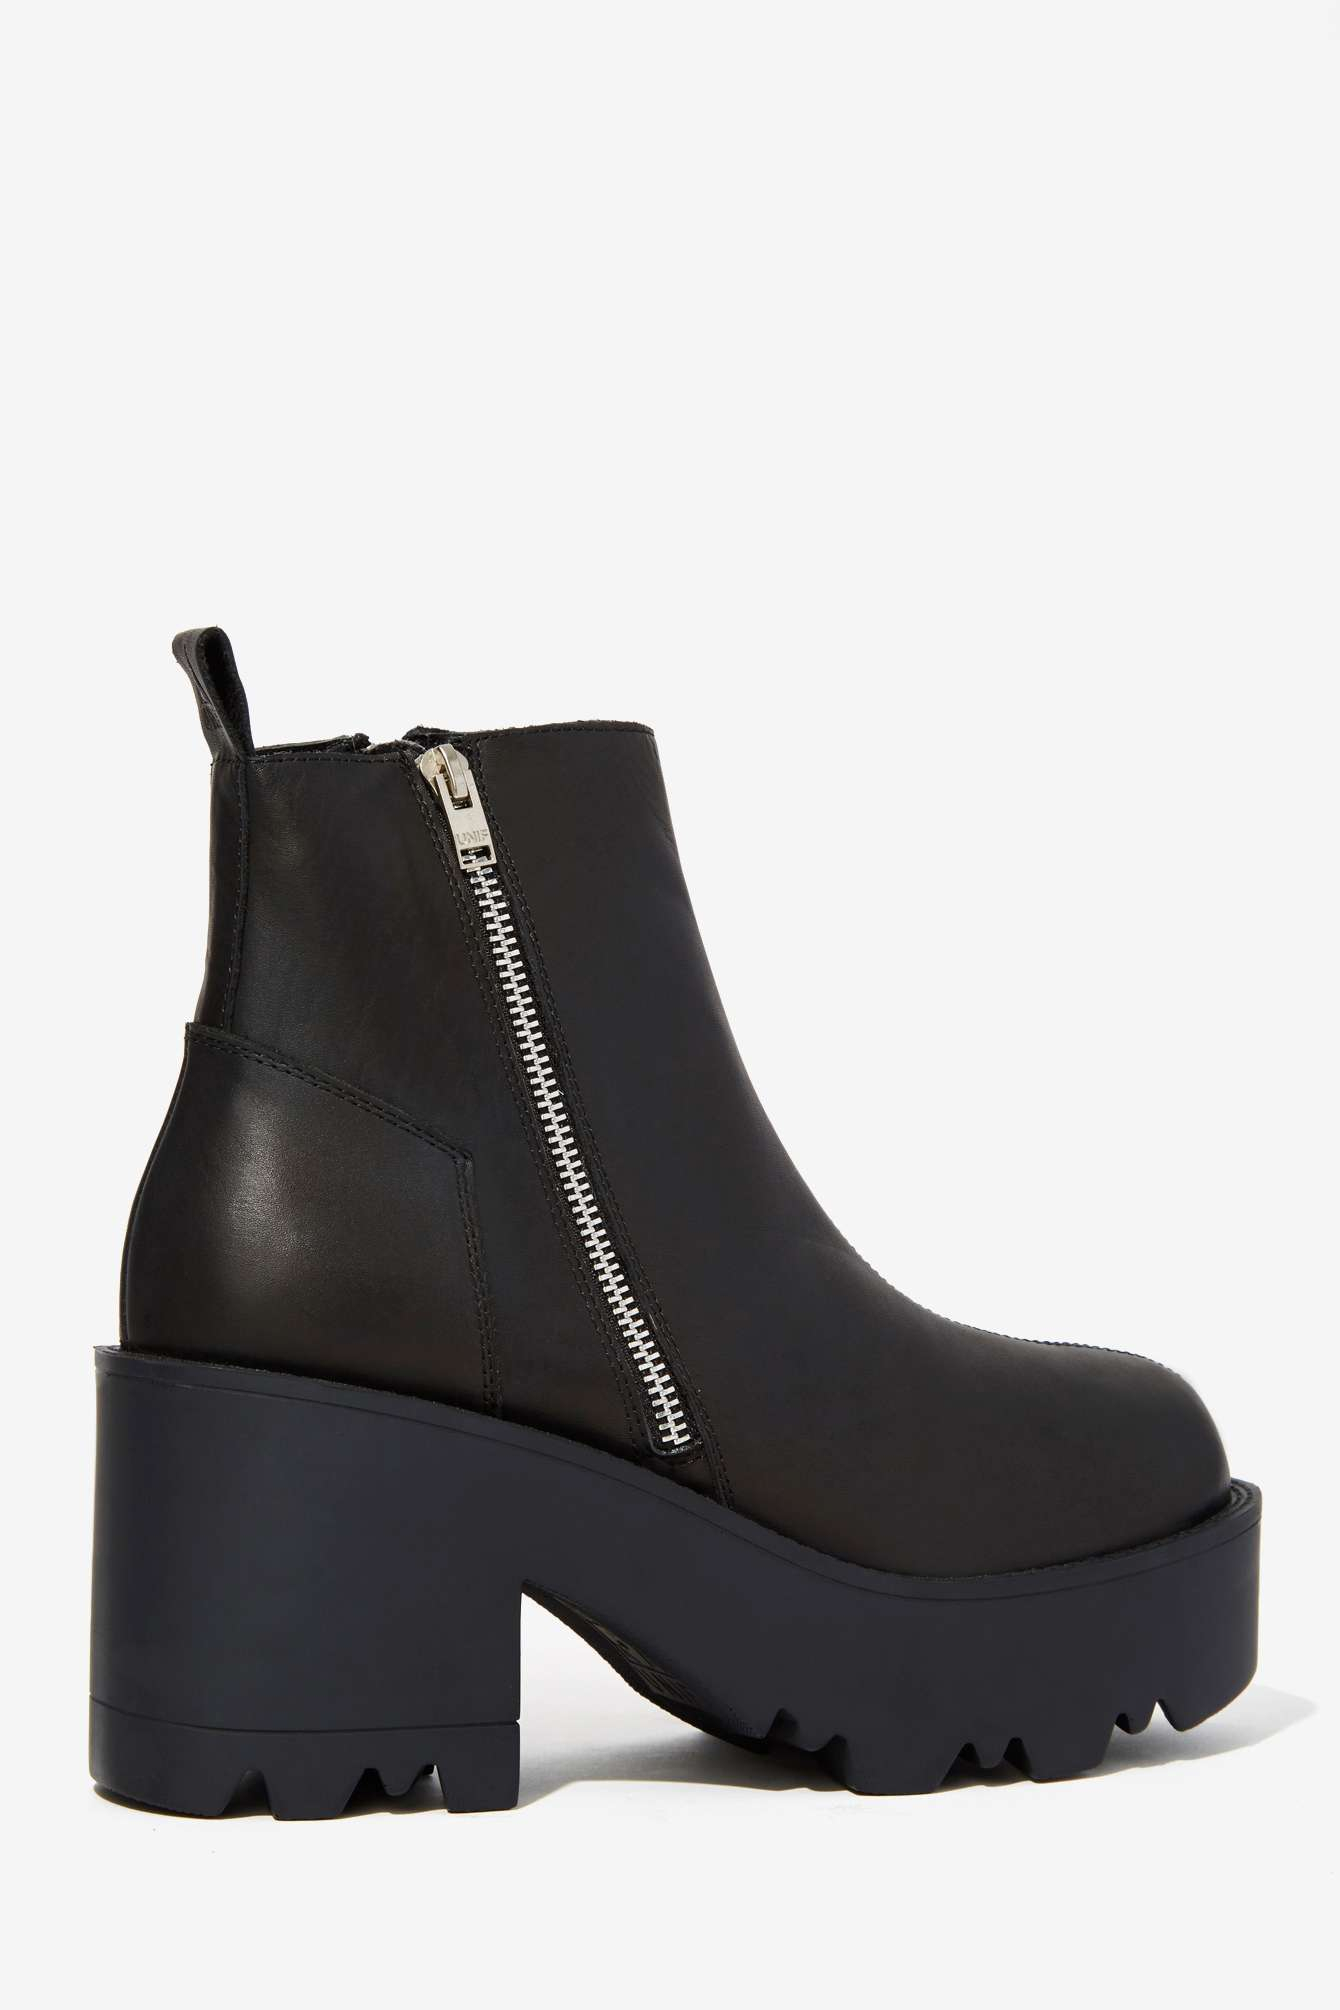 UNIF Rival Leather Platform Boot in